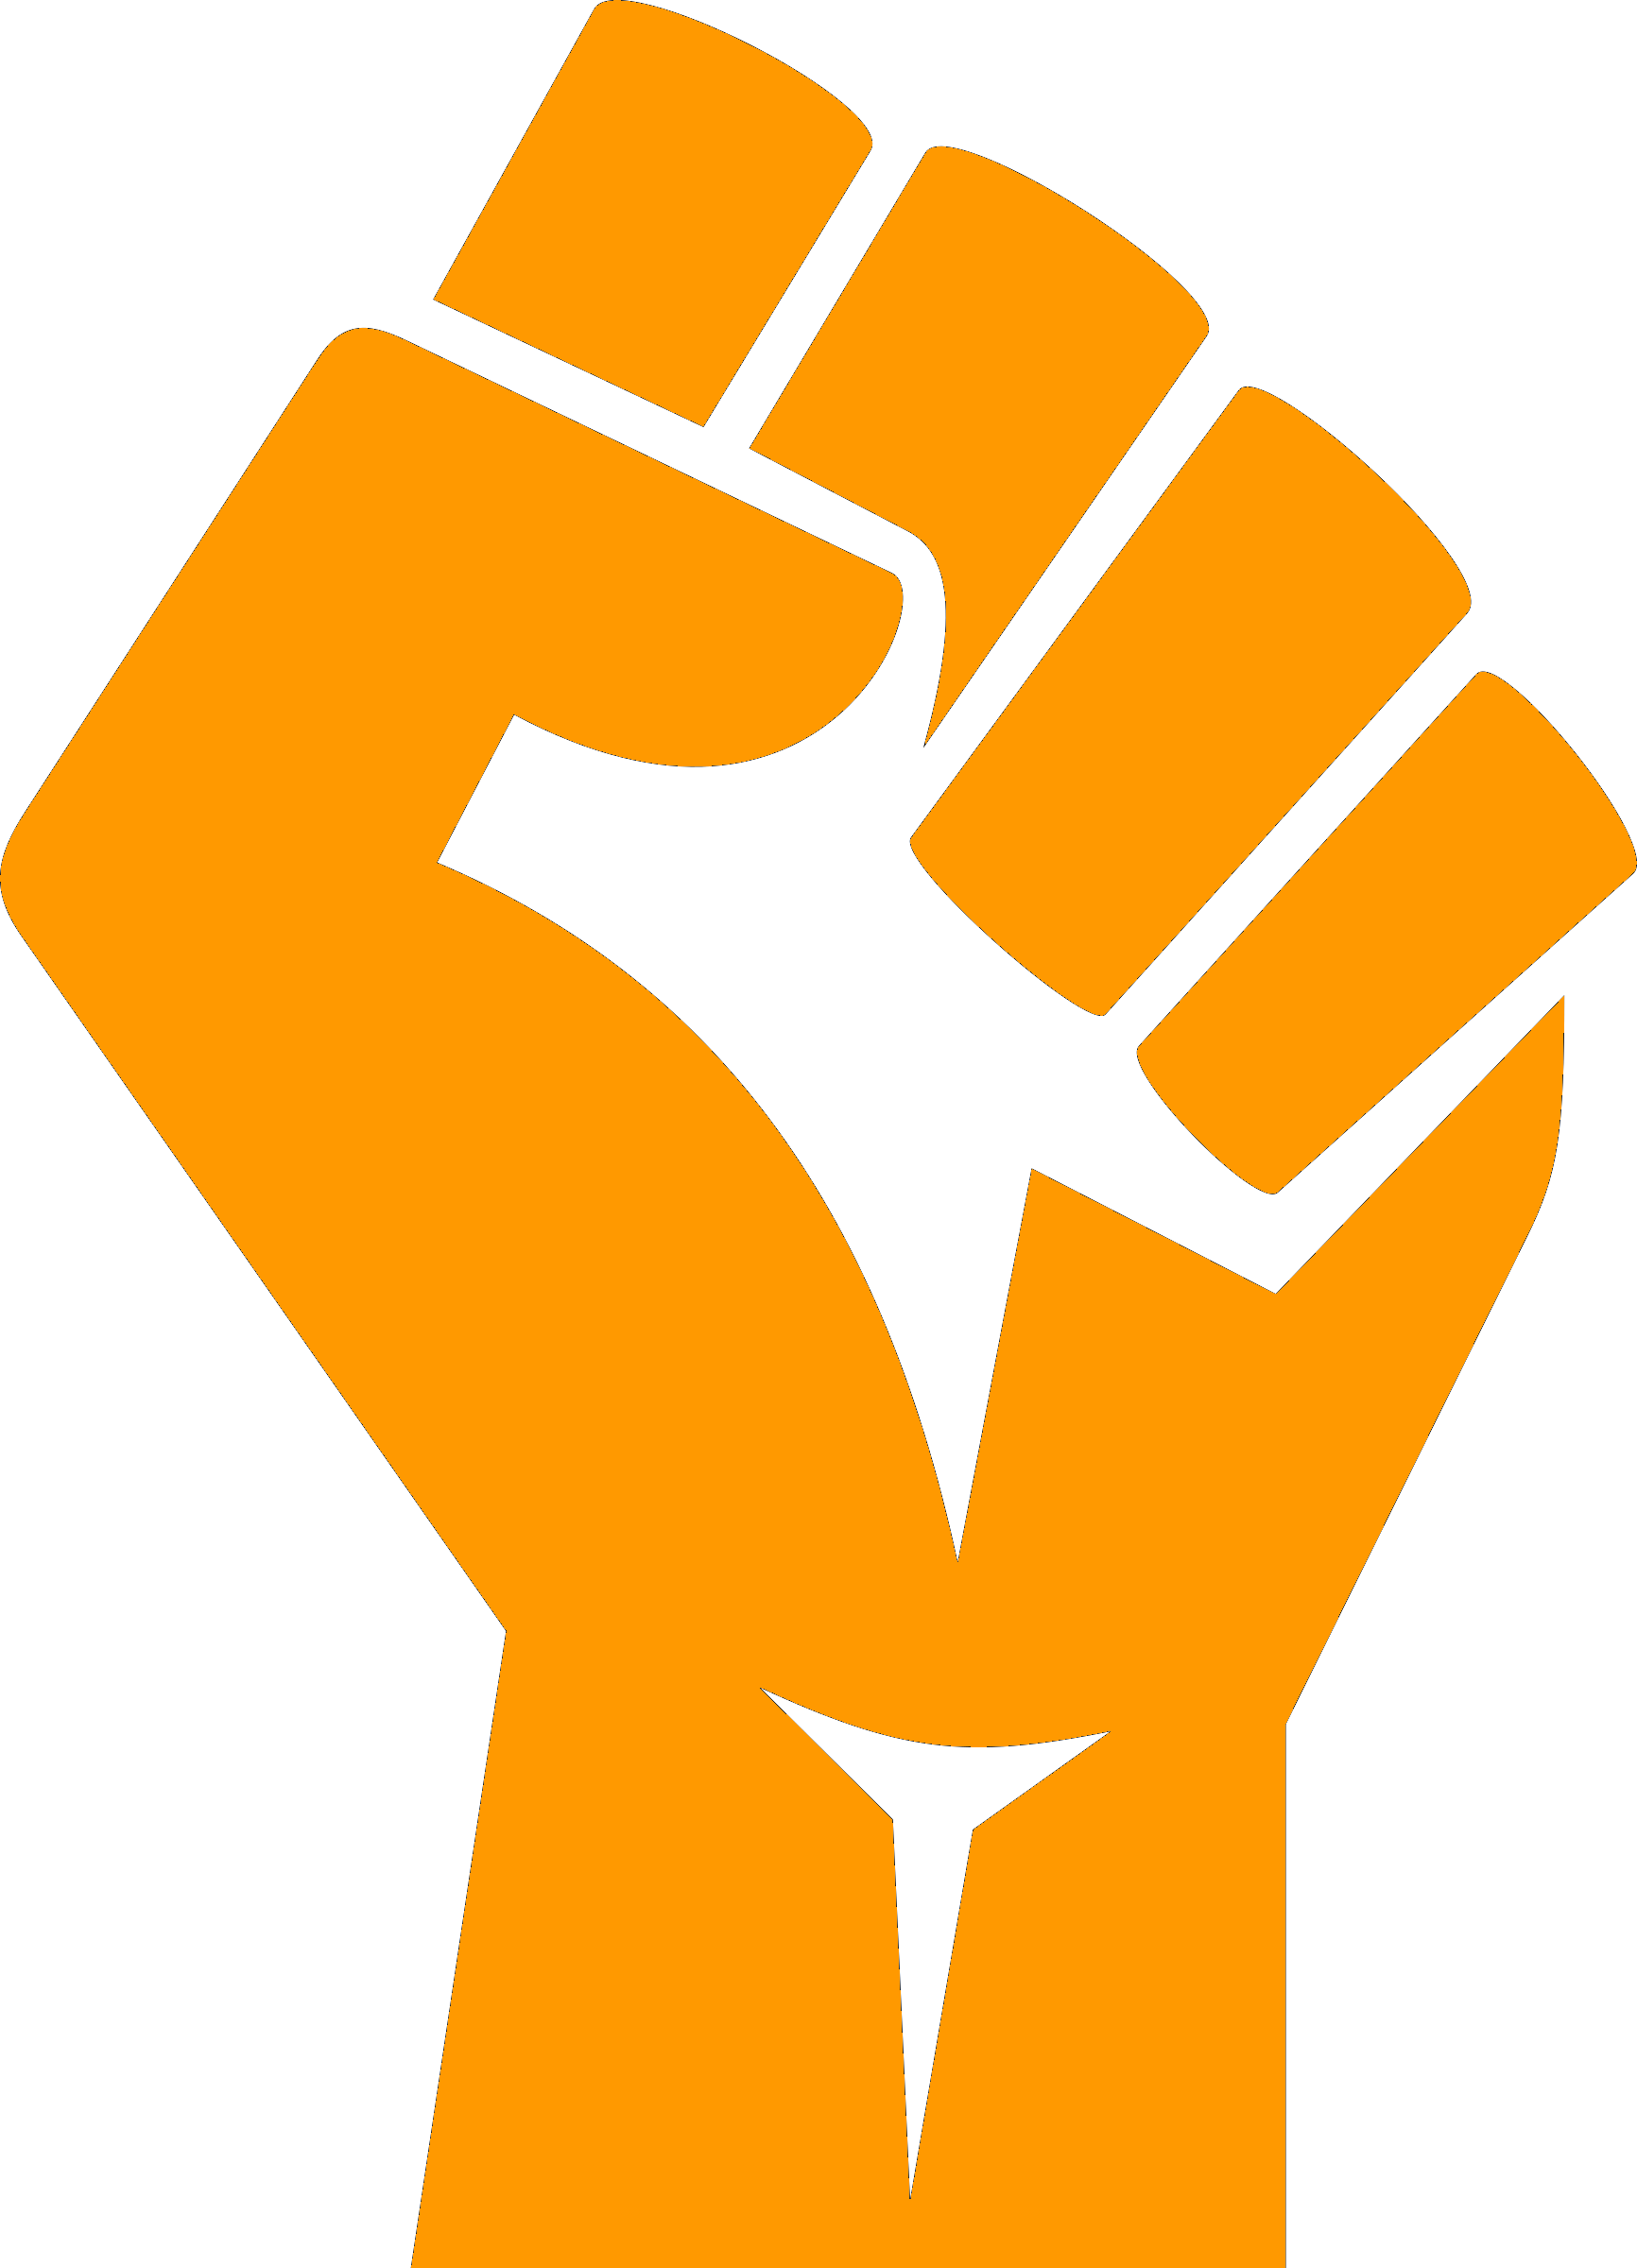 Fist png. File raised wikimedia commons